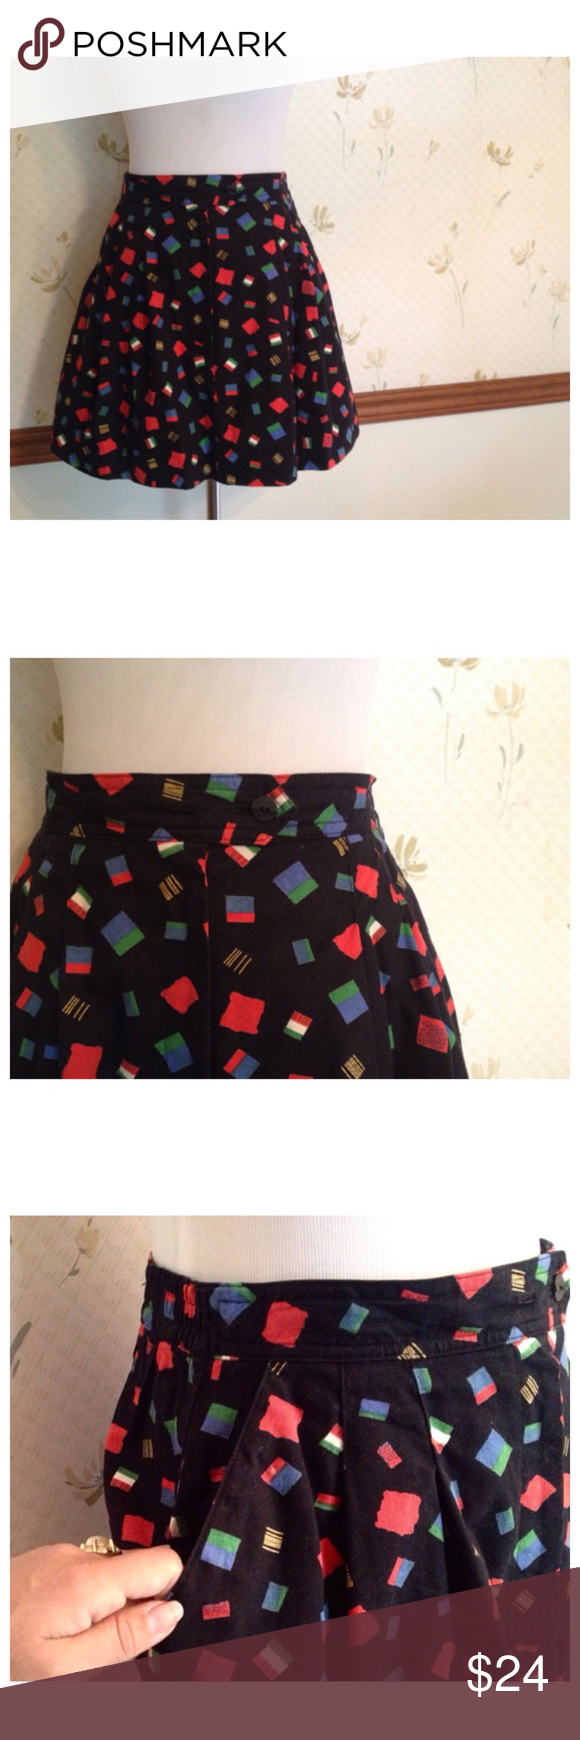 """Vintage Tennis Skirt / Mini Skirt w Pockets Tail This skirt is made by Tail so it's technically a tennis skirt but who cares! Mini skirt it is! And it has pockets!   Perfect condition  Cotton, Made in the USA   Waist- 26""""-28""""  Length- 15.5"""" Vintage Skirts Mini"""